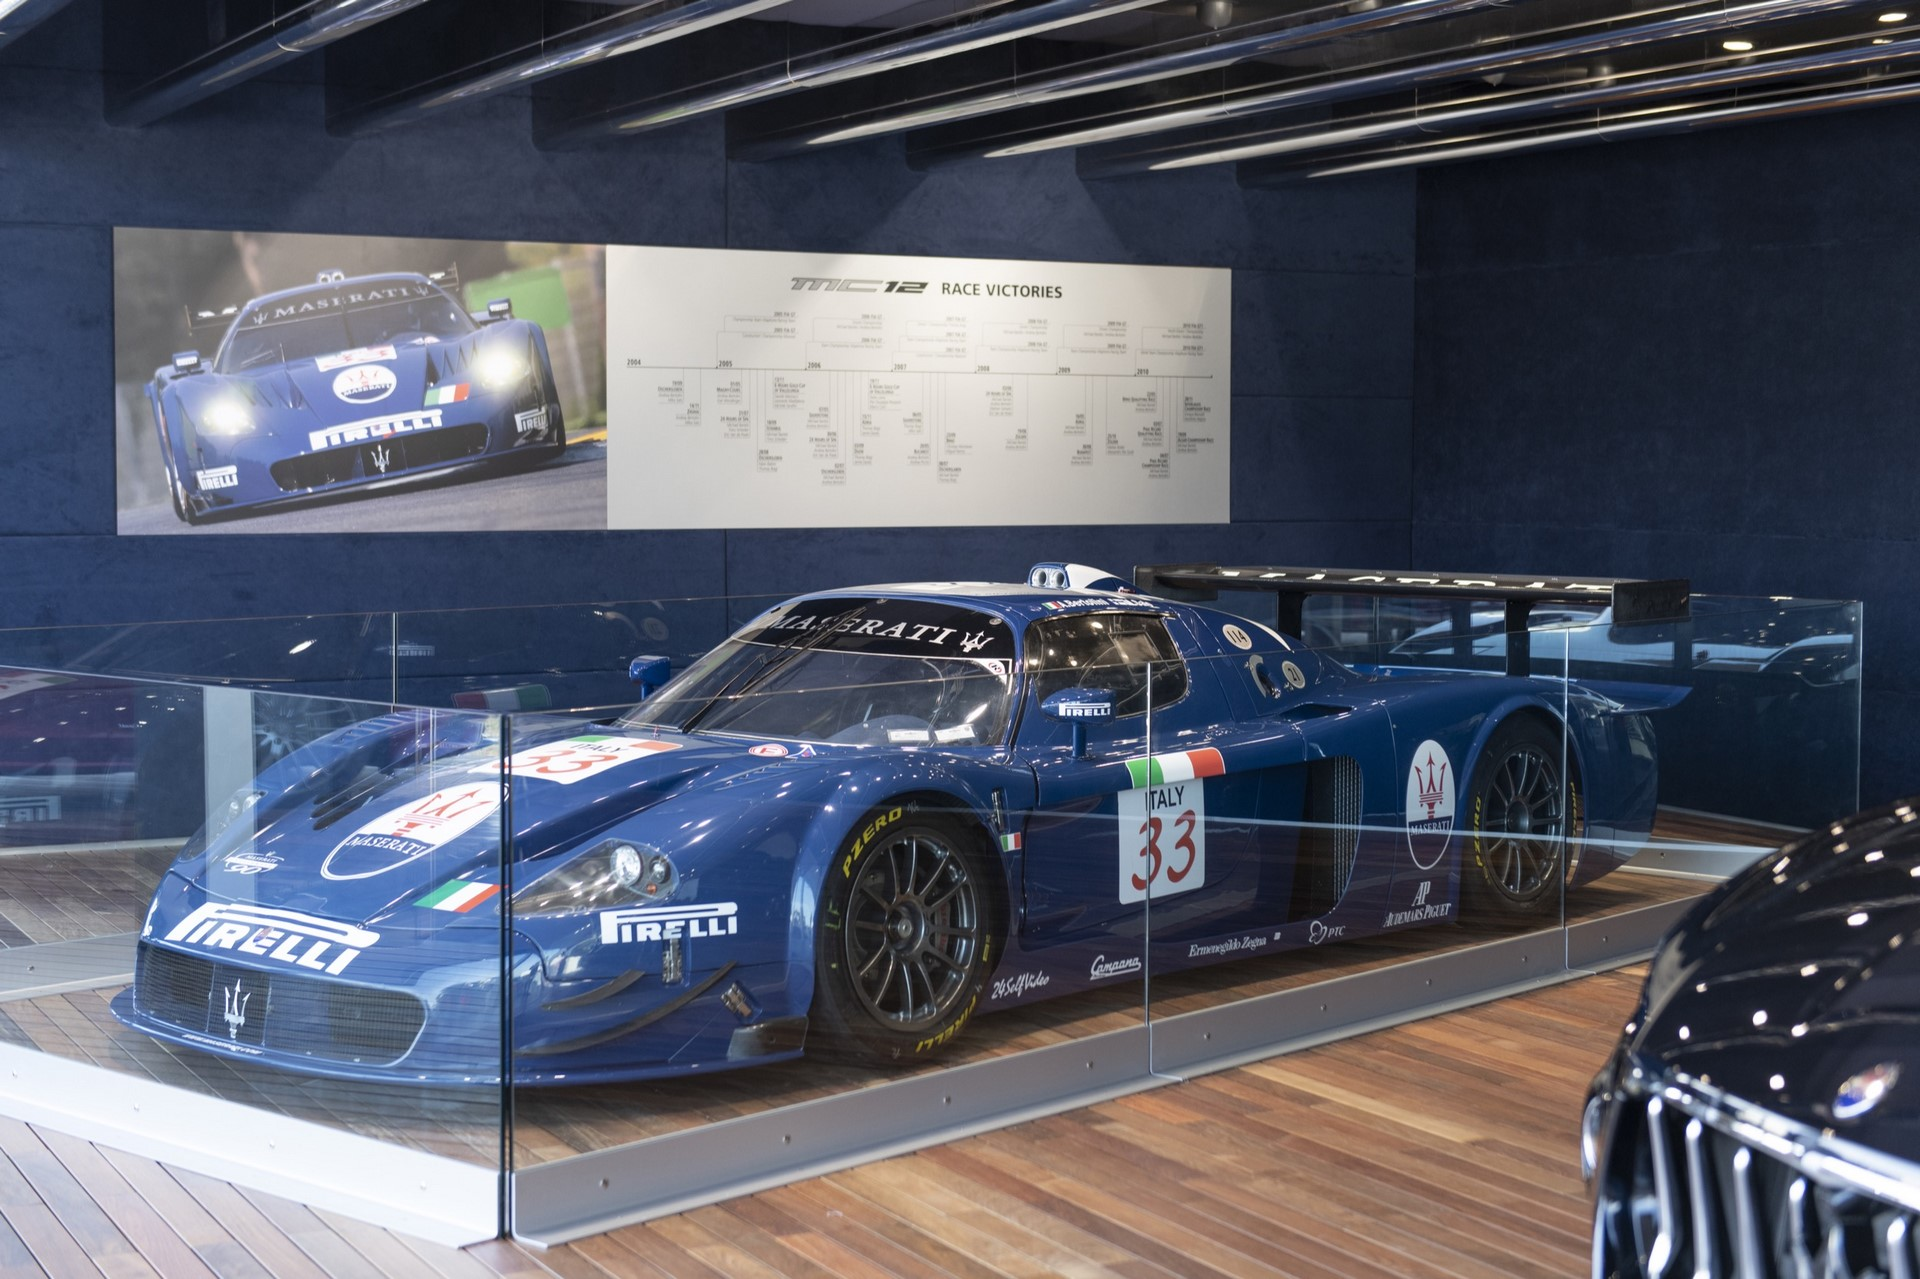 MC12 GT1 No. 33 - Maserati at Goodwood Festival of Speed